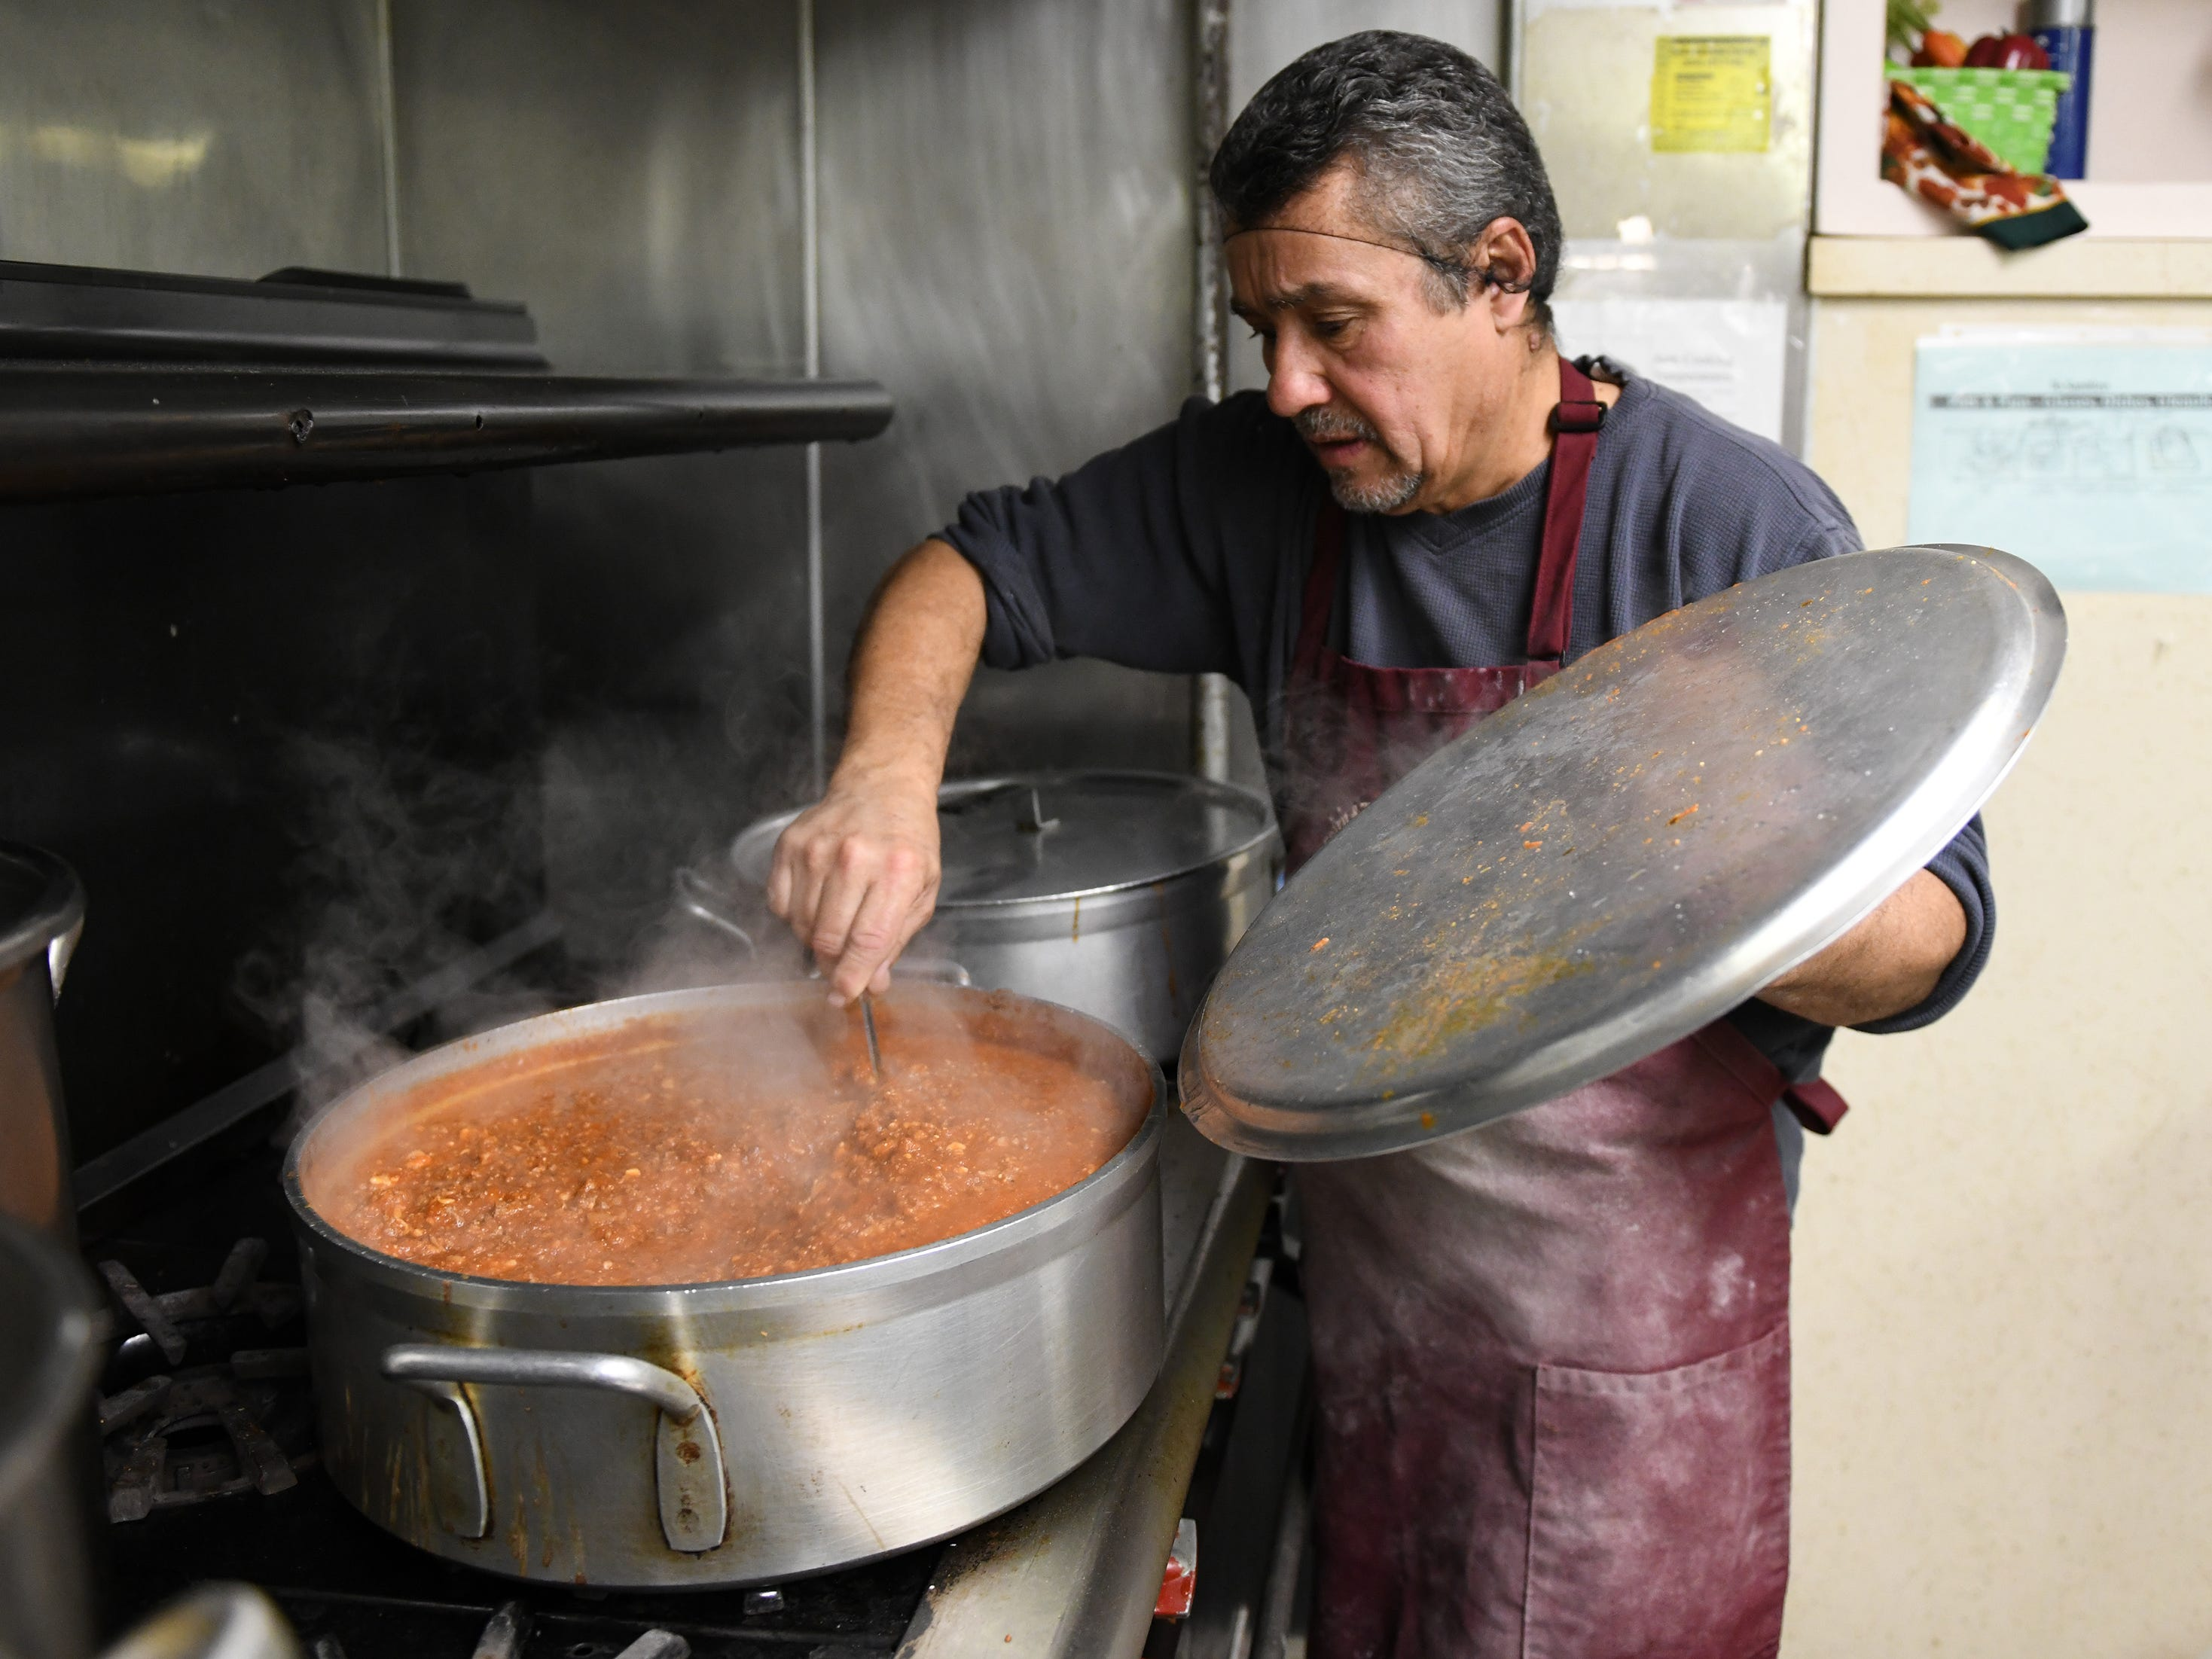 First United Methodist Church soup kitchen volunteer, Tony Centeno, 60 of Vineland, stirs a pot of chili on Tuesday, Jan. 29, 2019.